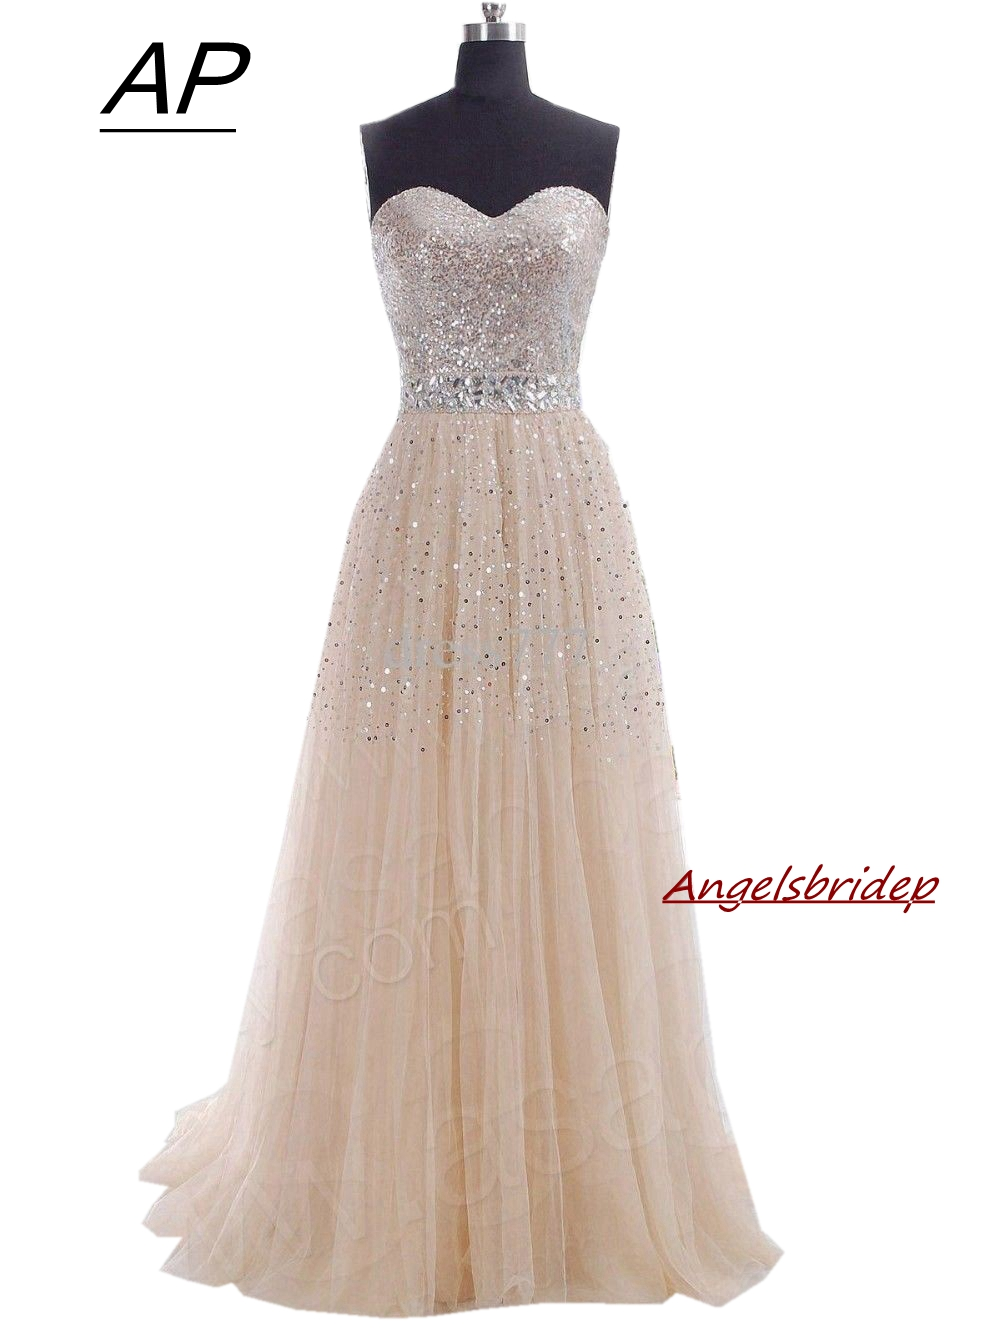 ANGELSBRIDEP Champagne Sweetheart Bridesmaid Dresses Long Sequined Sparking Skirt Vestido Madrinha Formal Party Gown